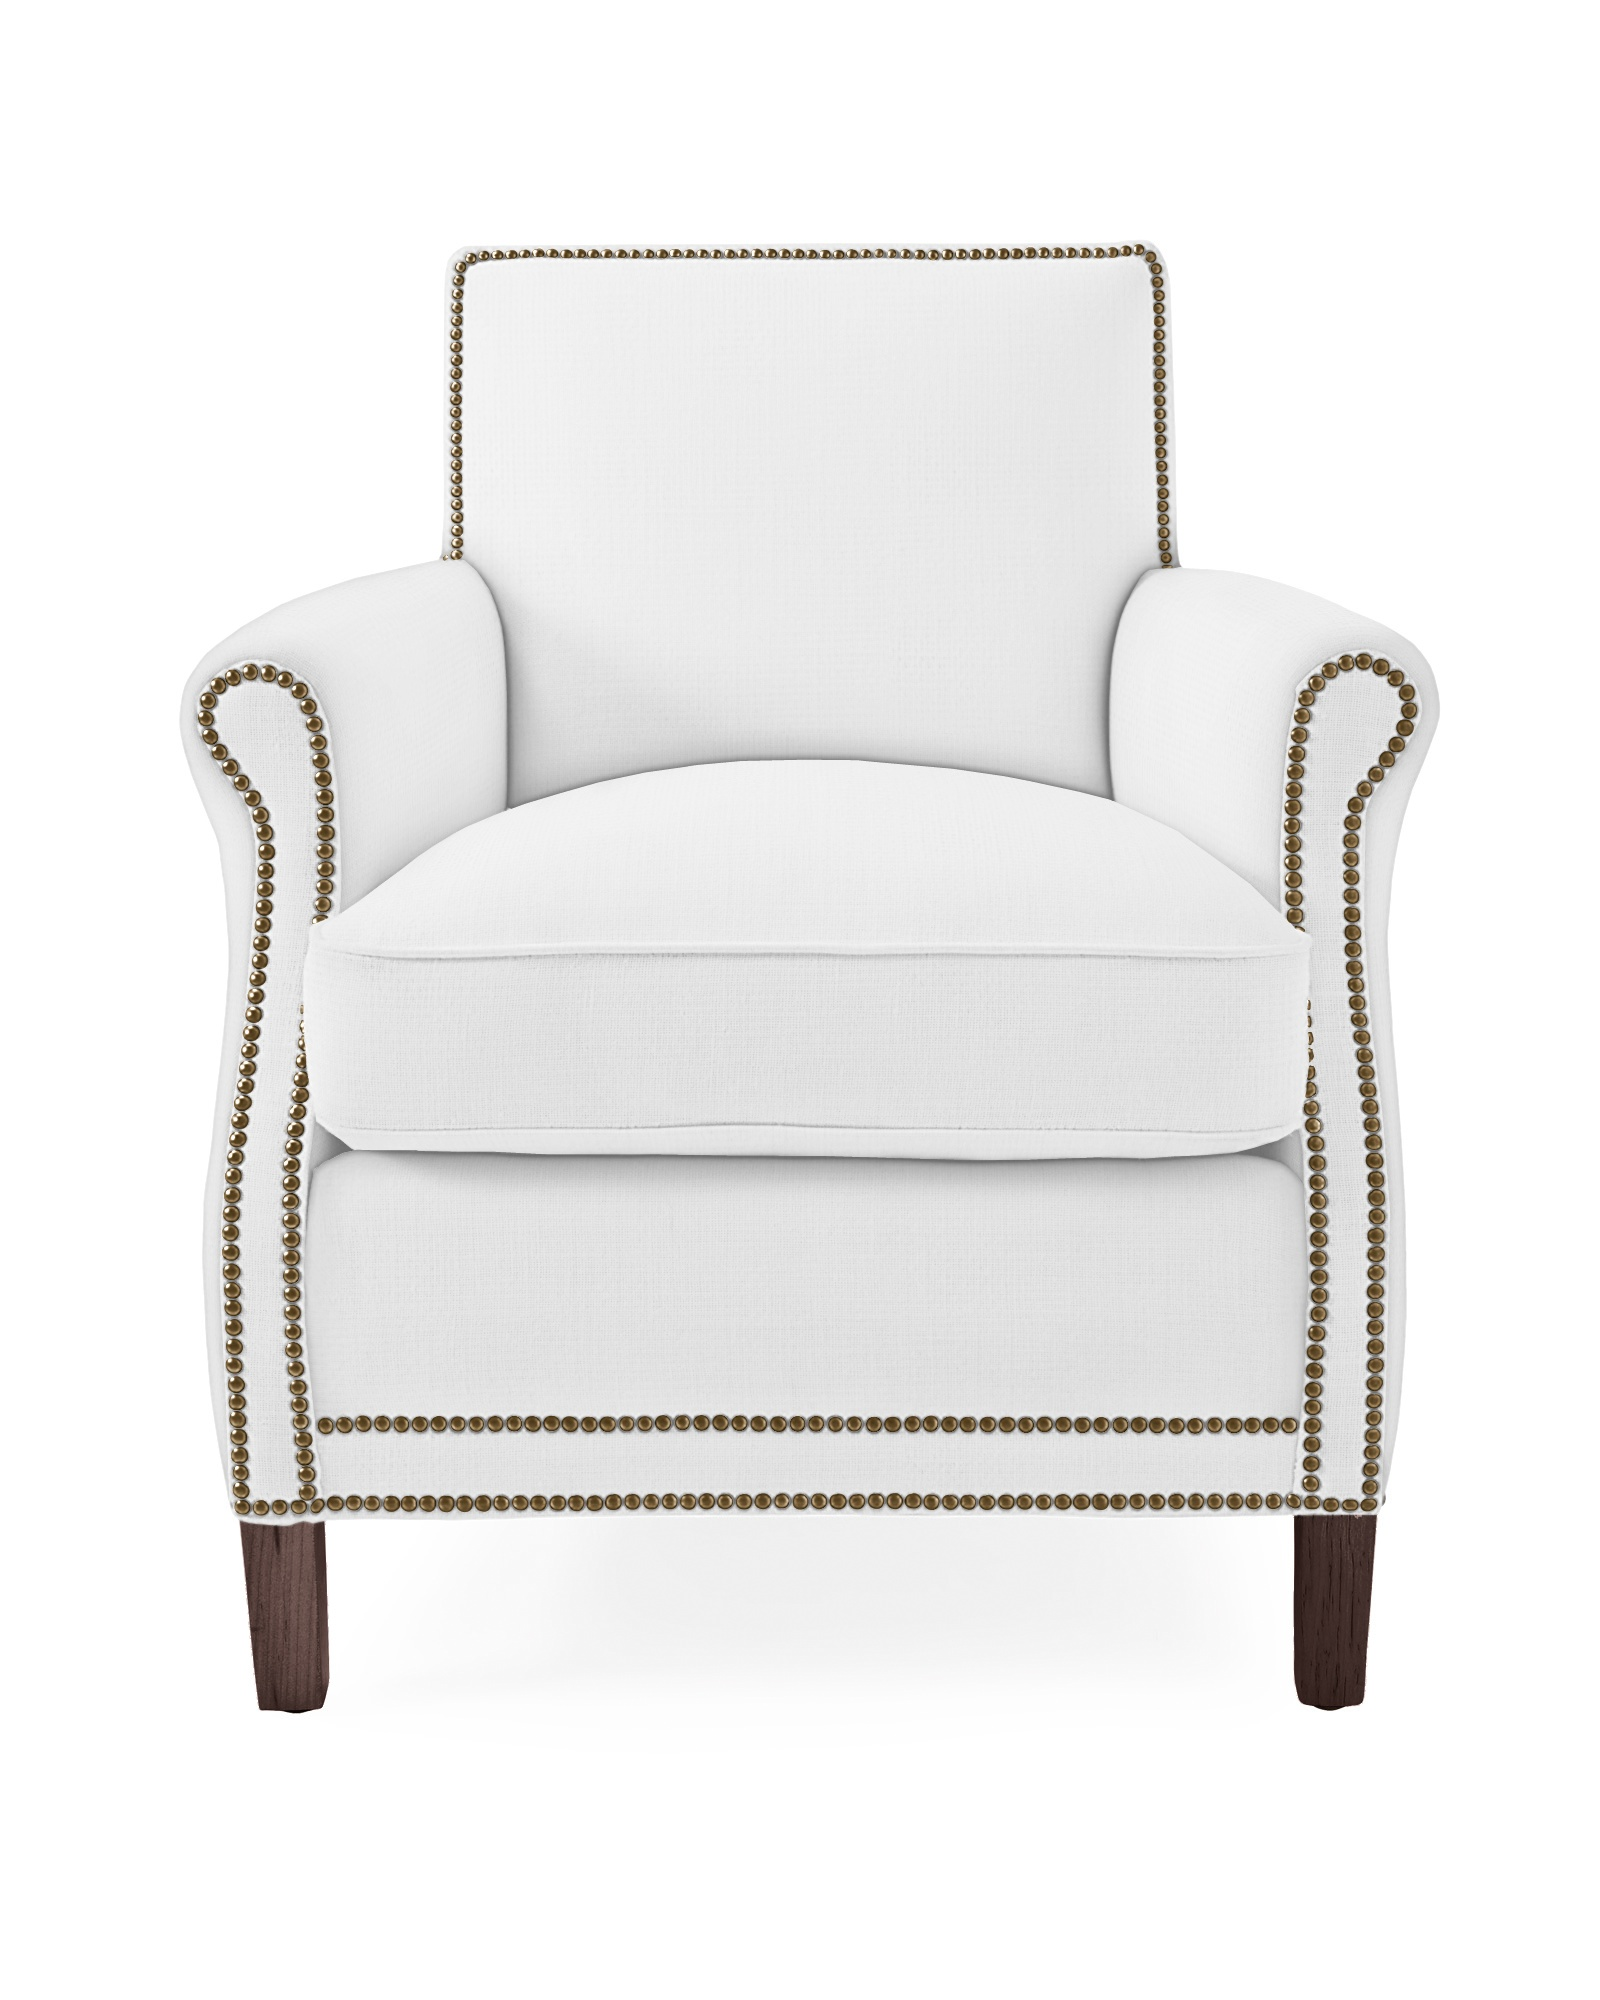 Canyon Chair with Nailheads